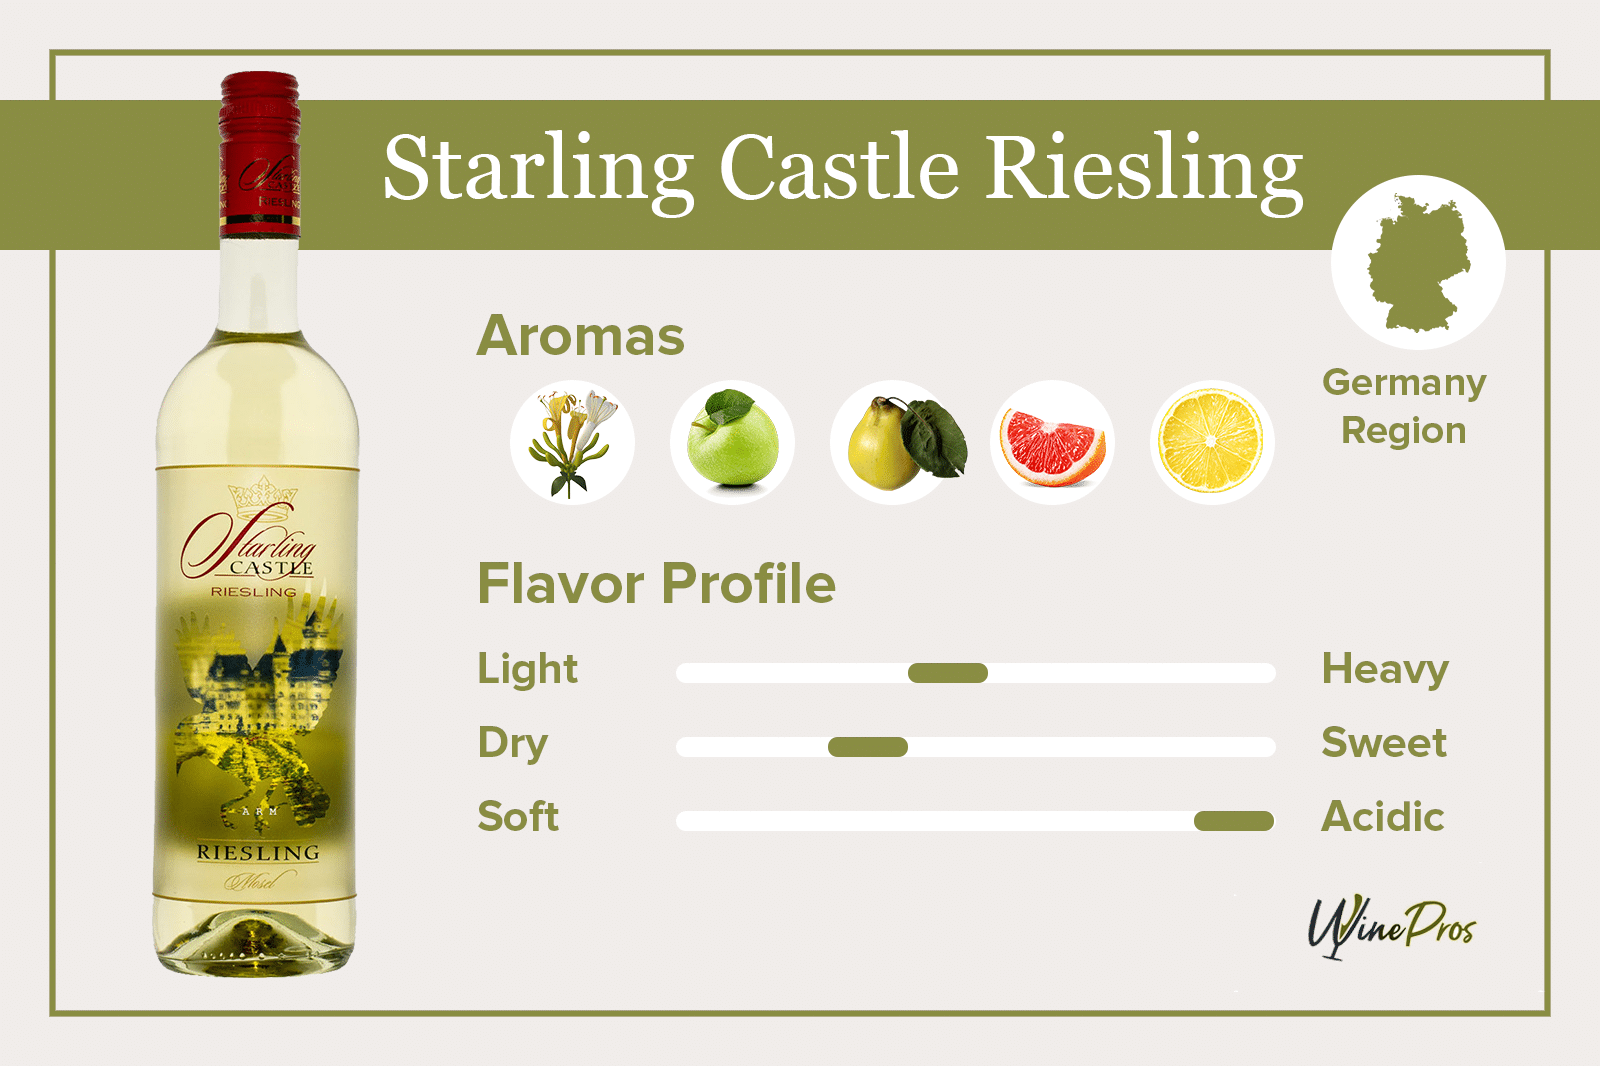 Starling Castle Riesling Featured